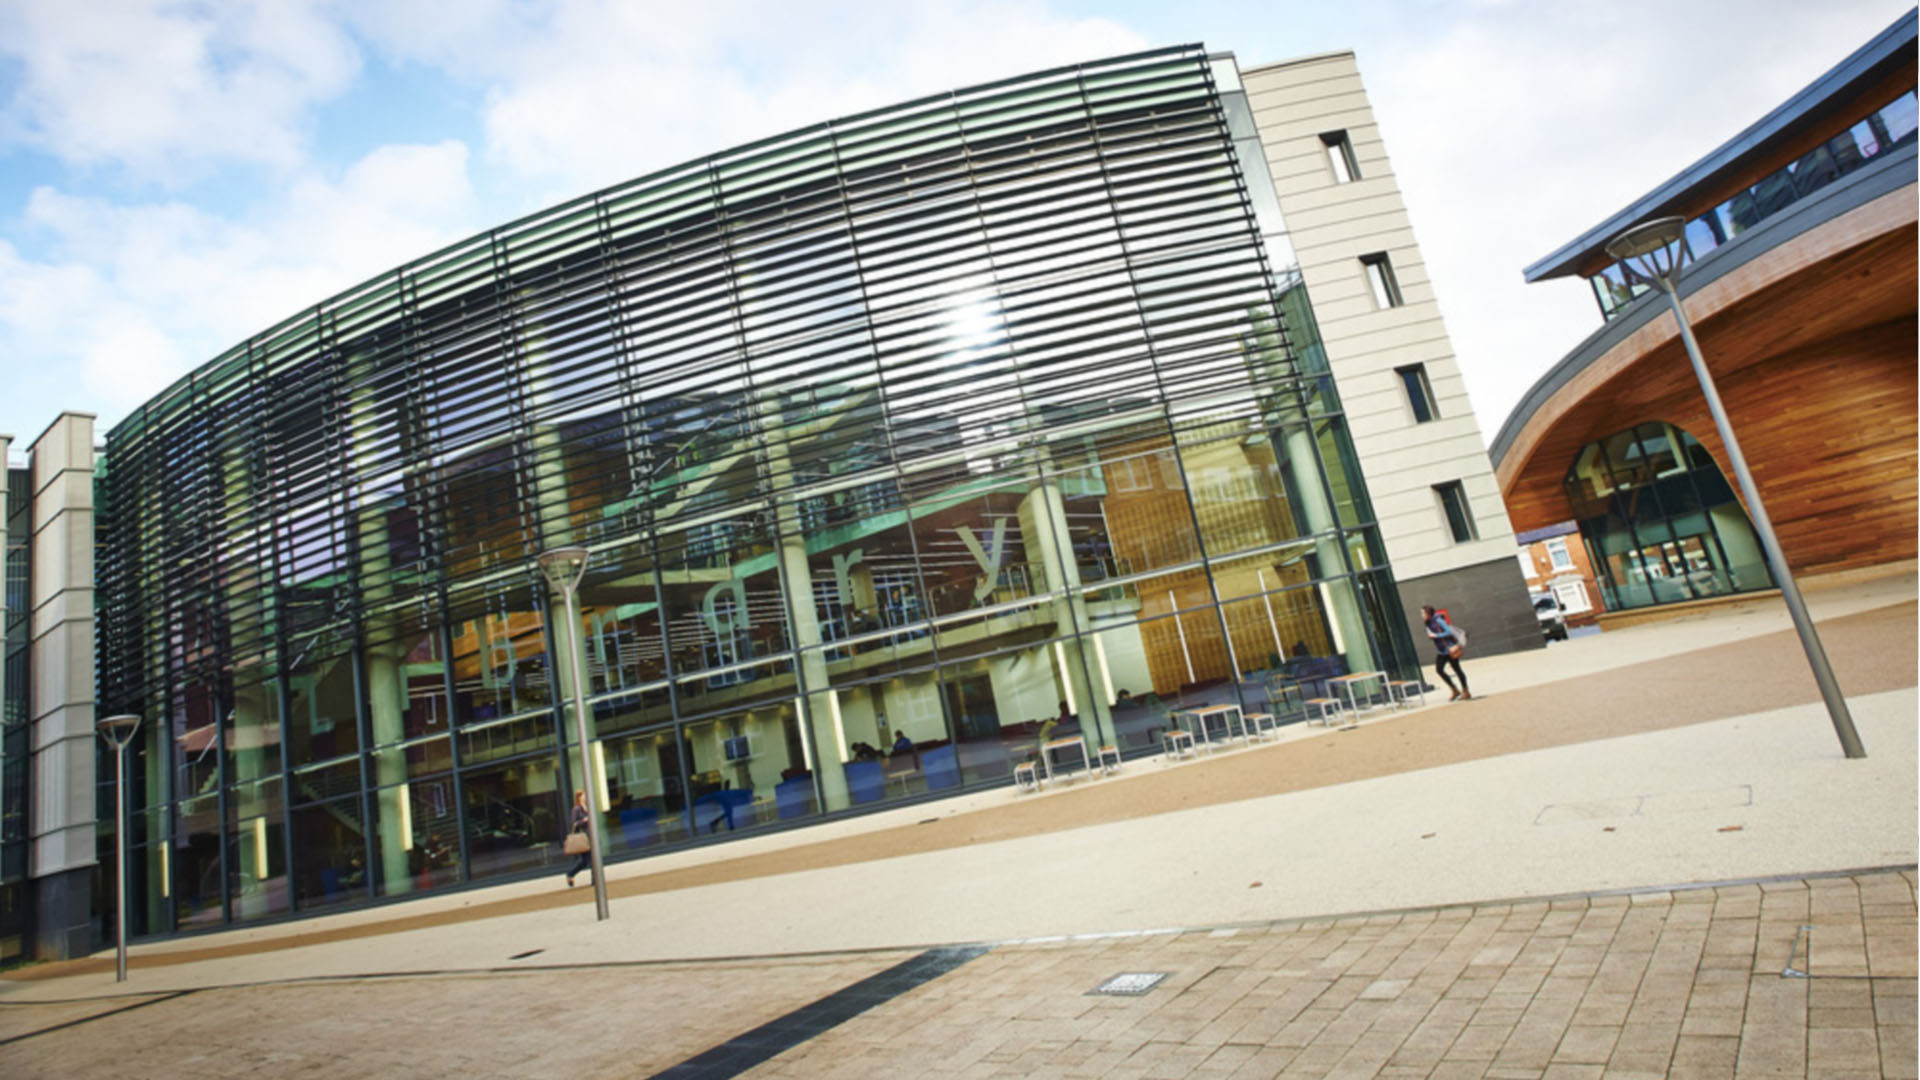 Bill Bryson Library Durham University library building architecture design exterior view